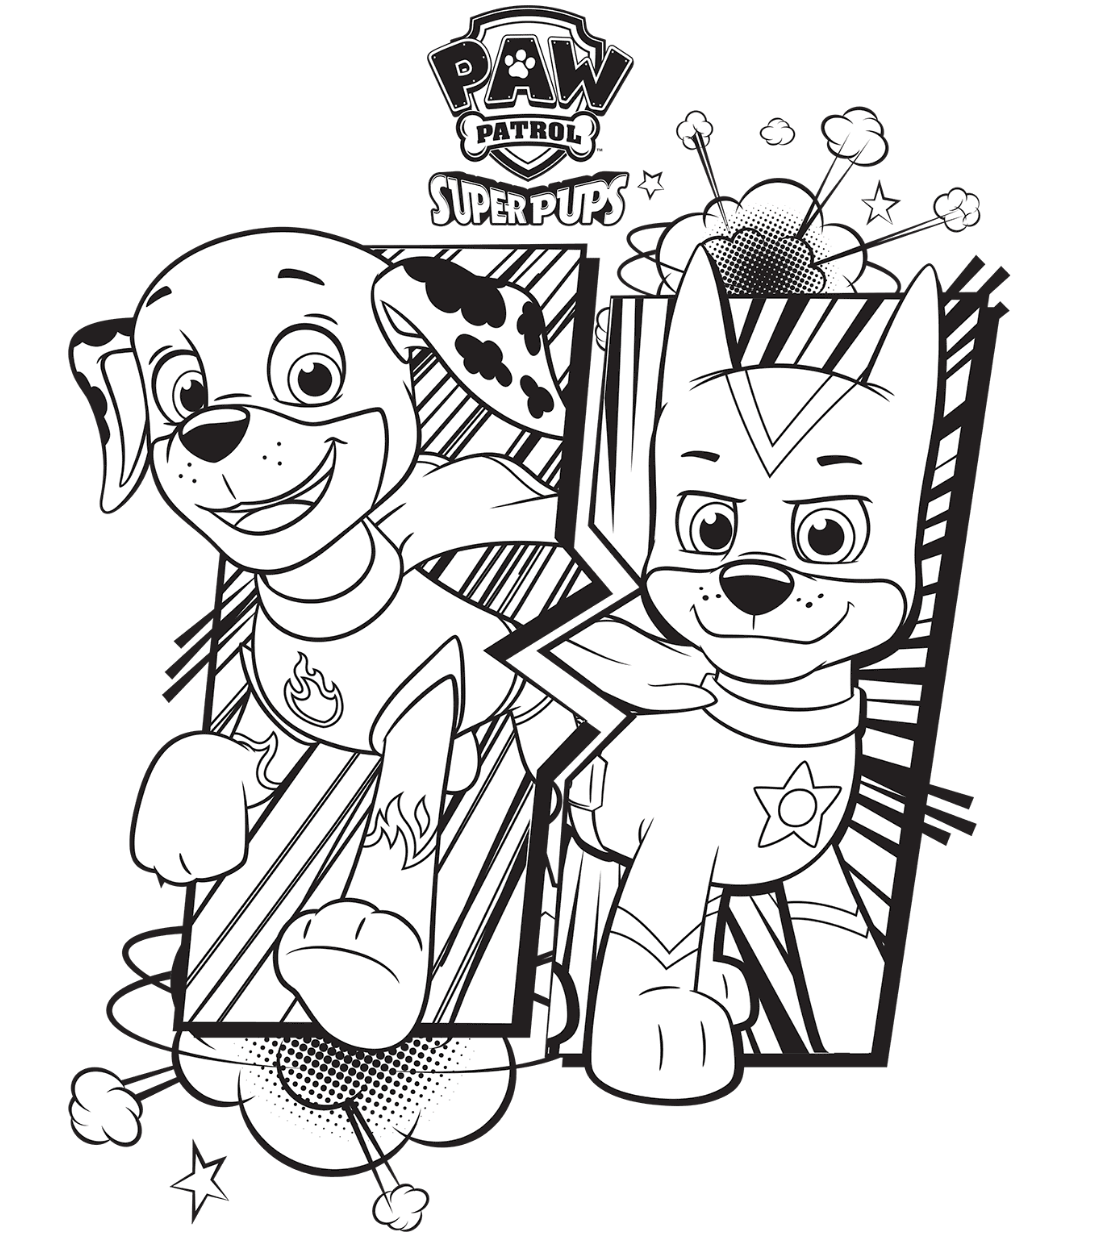 PAWs Colouring Page